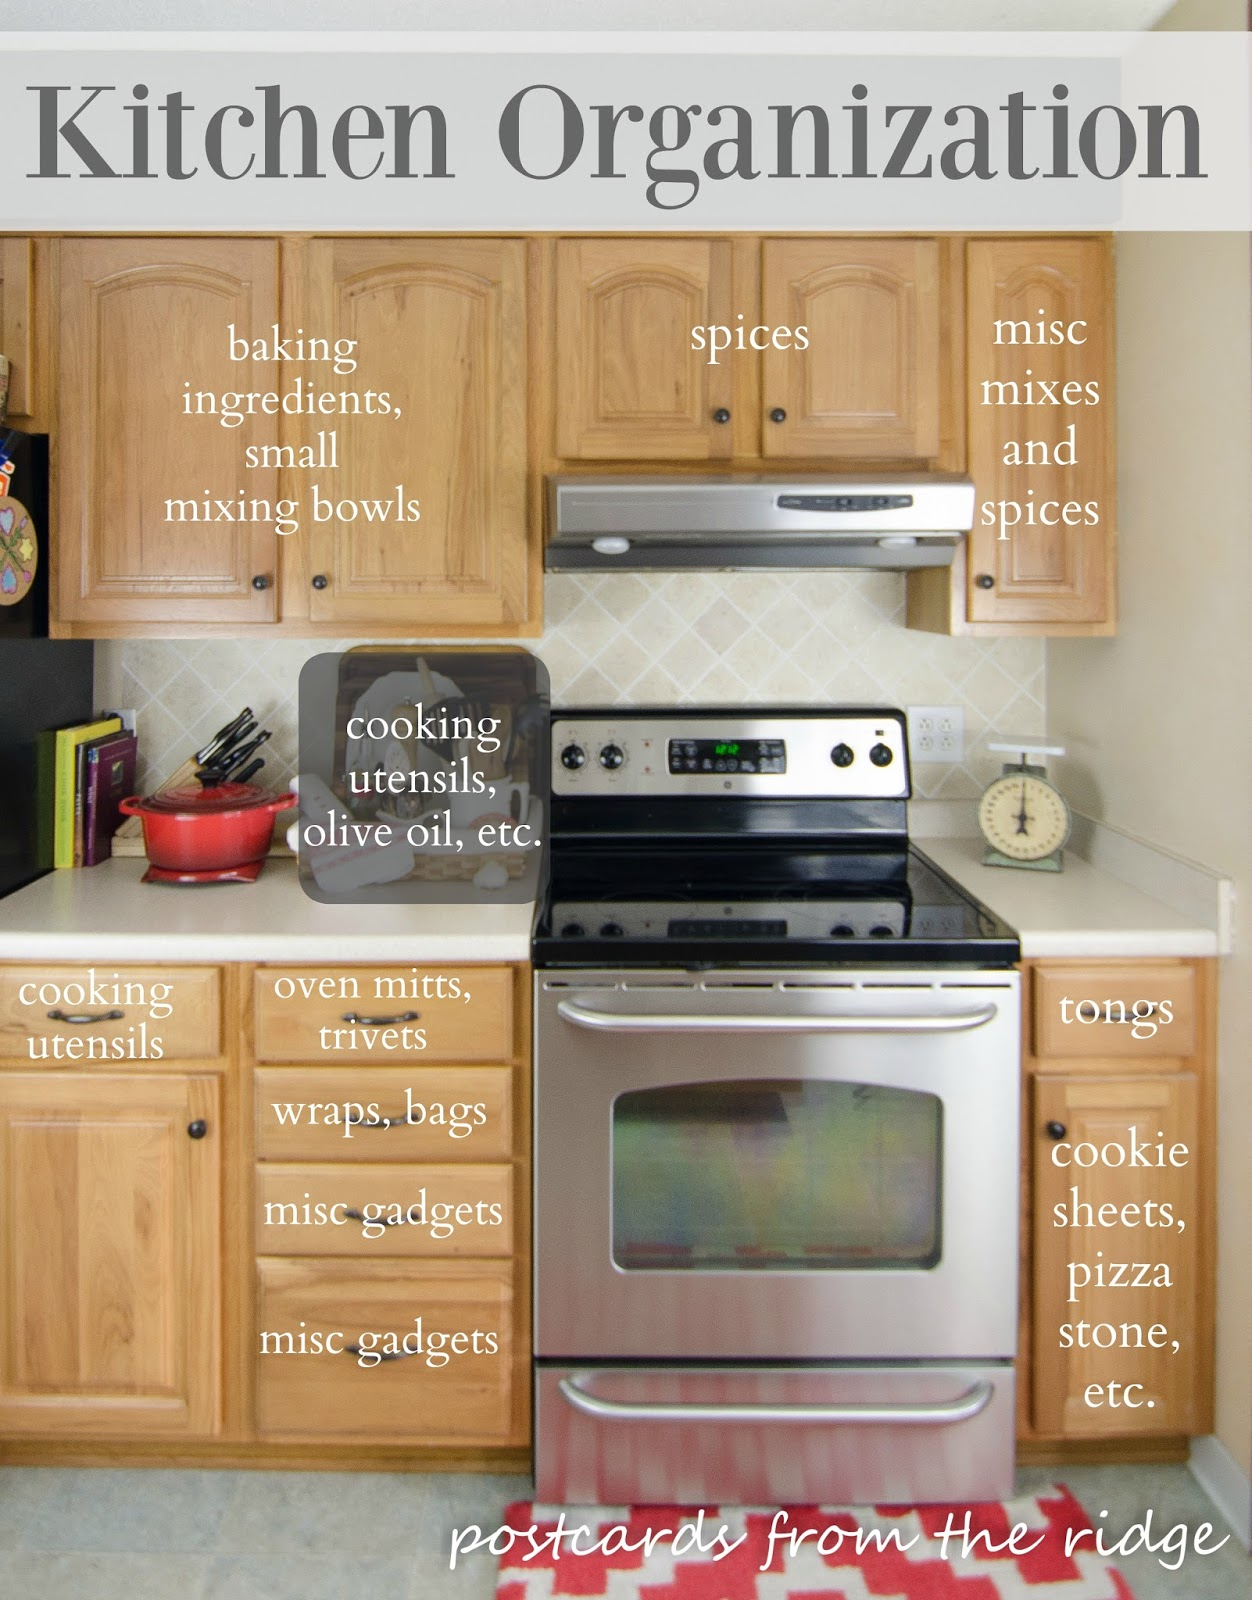 kitchen organization tips kitchen organization ideas Lots of kitchen organization ideas Keep the most used items within easy reach